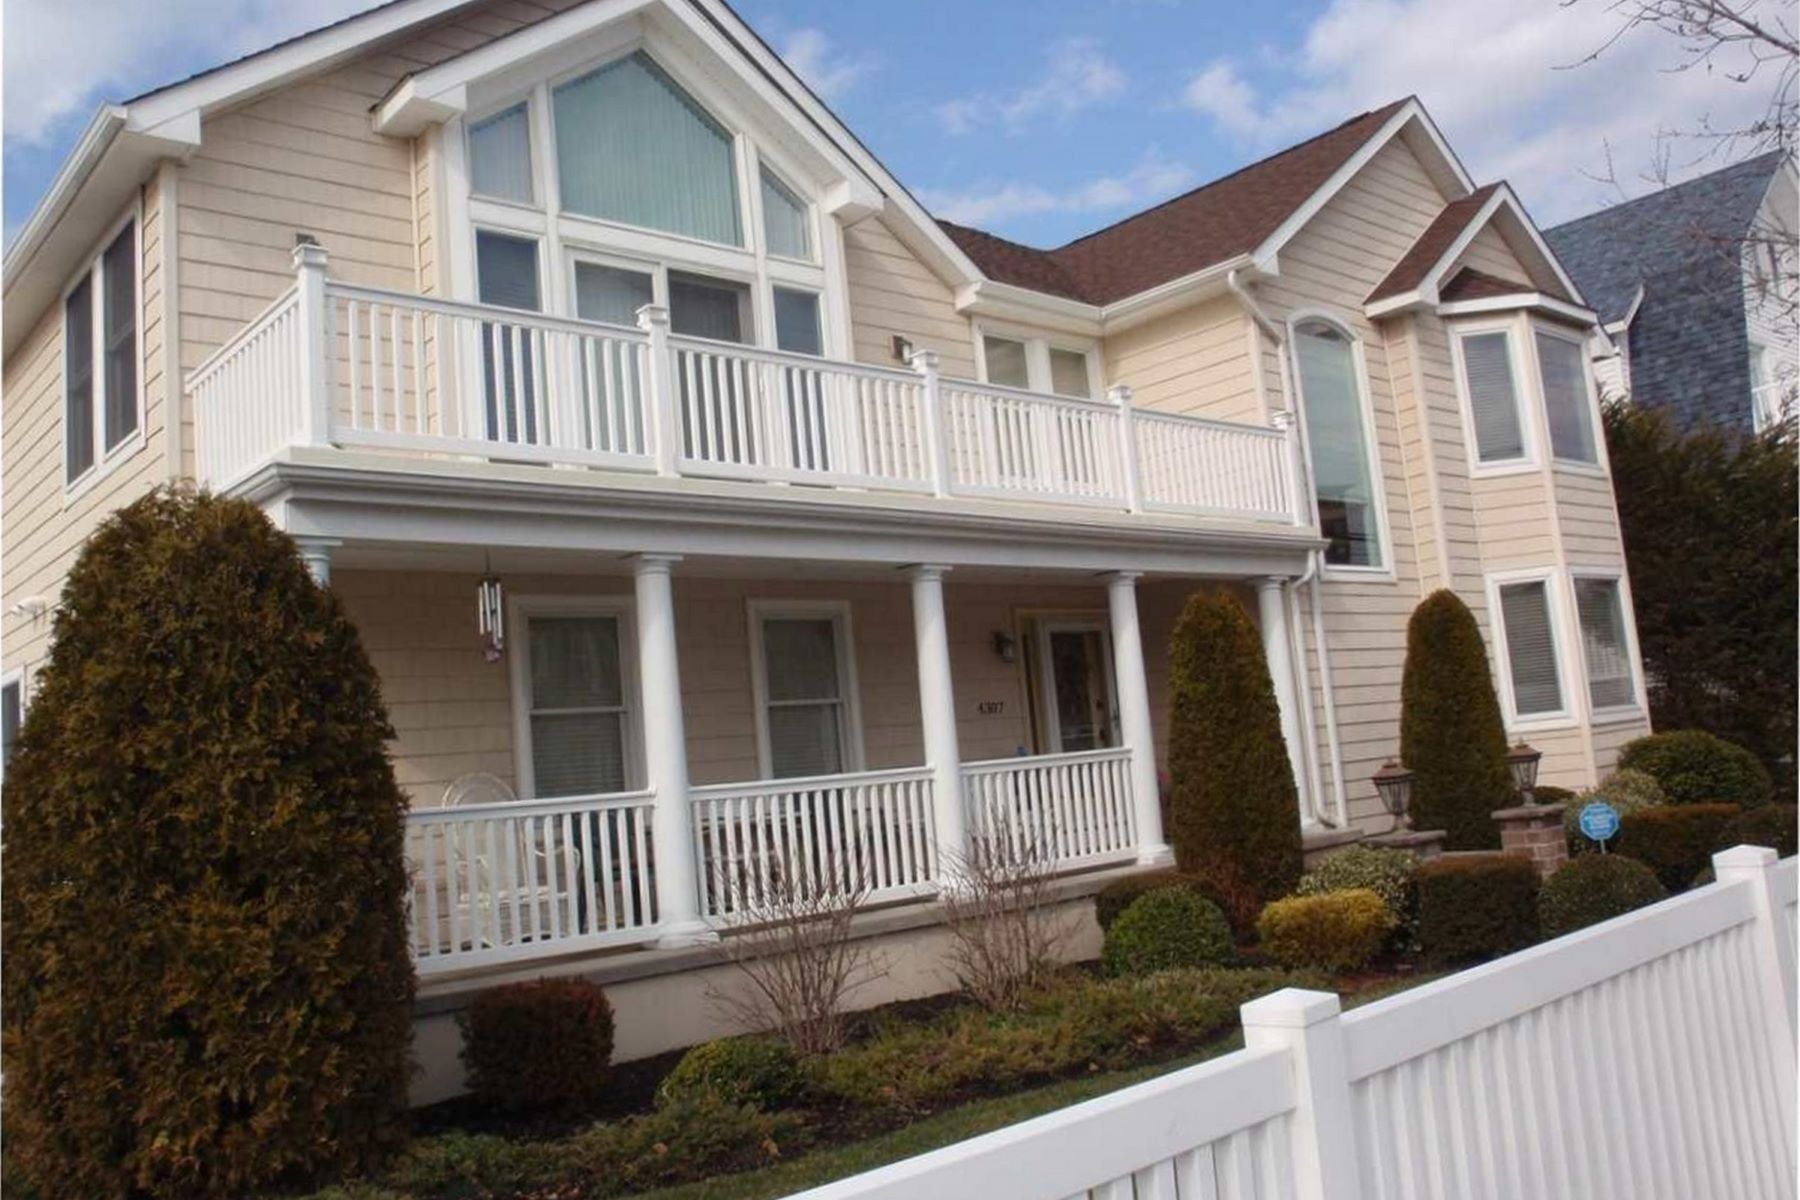 Single Family Homes for Active at 4307 Atlantic Avenue Atlantic City, New Jersey 08401 United States